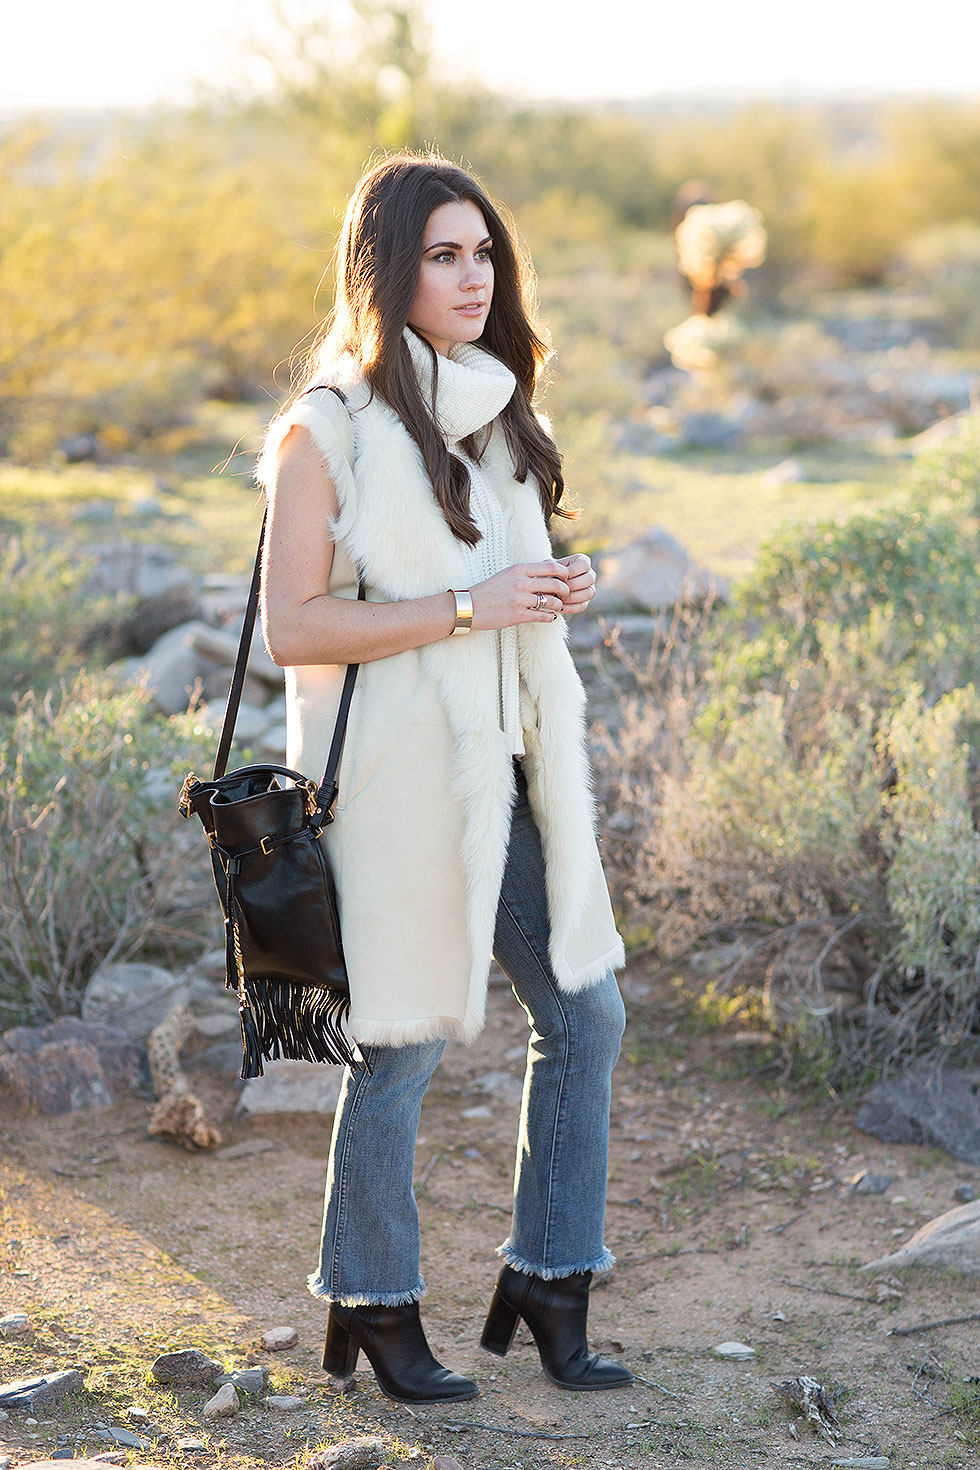 Theory Ivory Shearling Vest, Saint Laurent Monogram Fringe Bucket Bag, Madewell High Rise Cropped Jeans with Fringe Desert Outfit Arizona